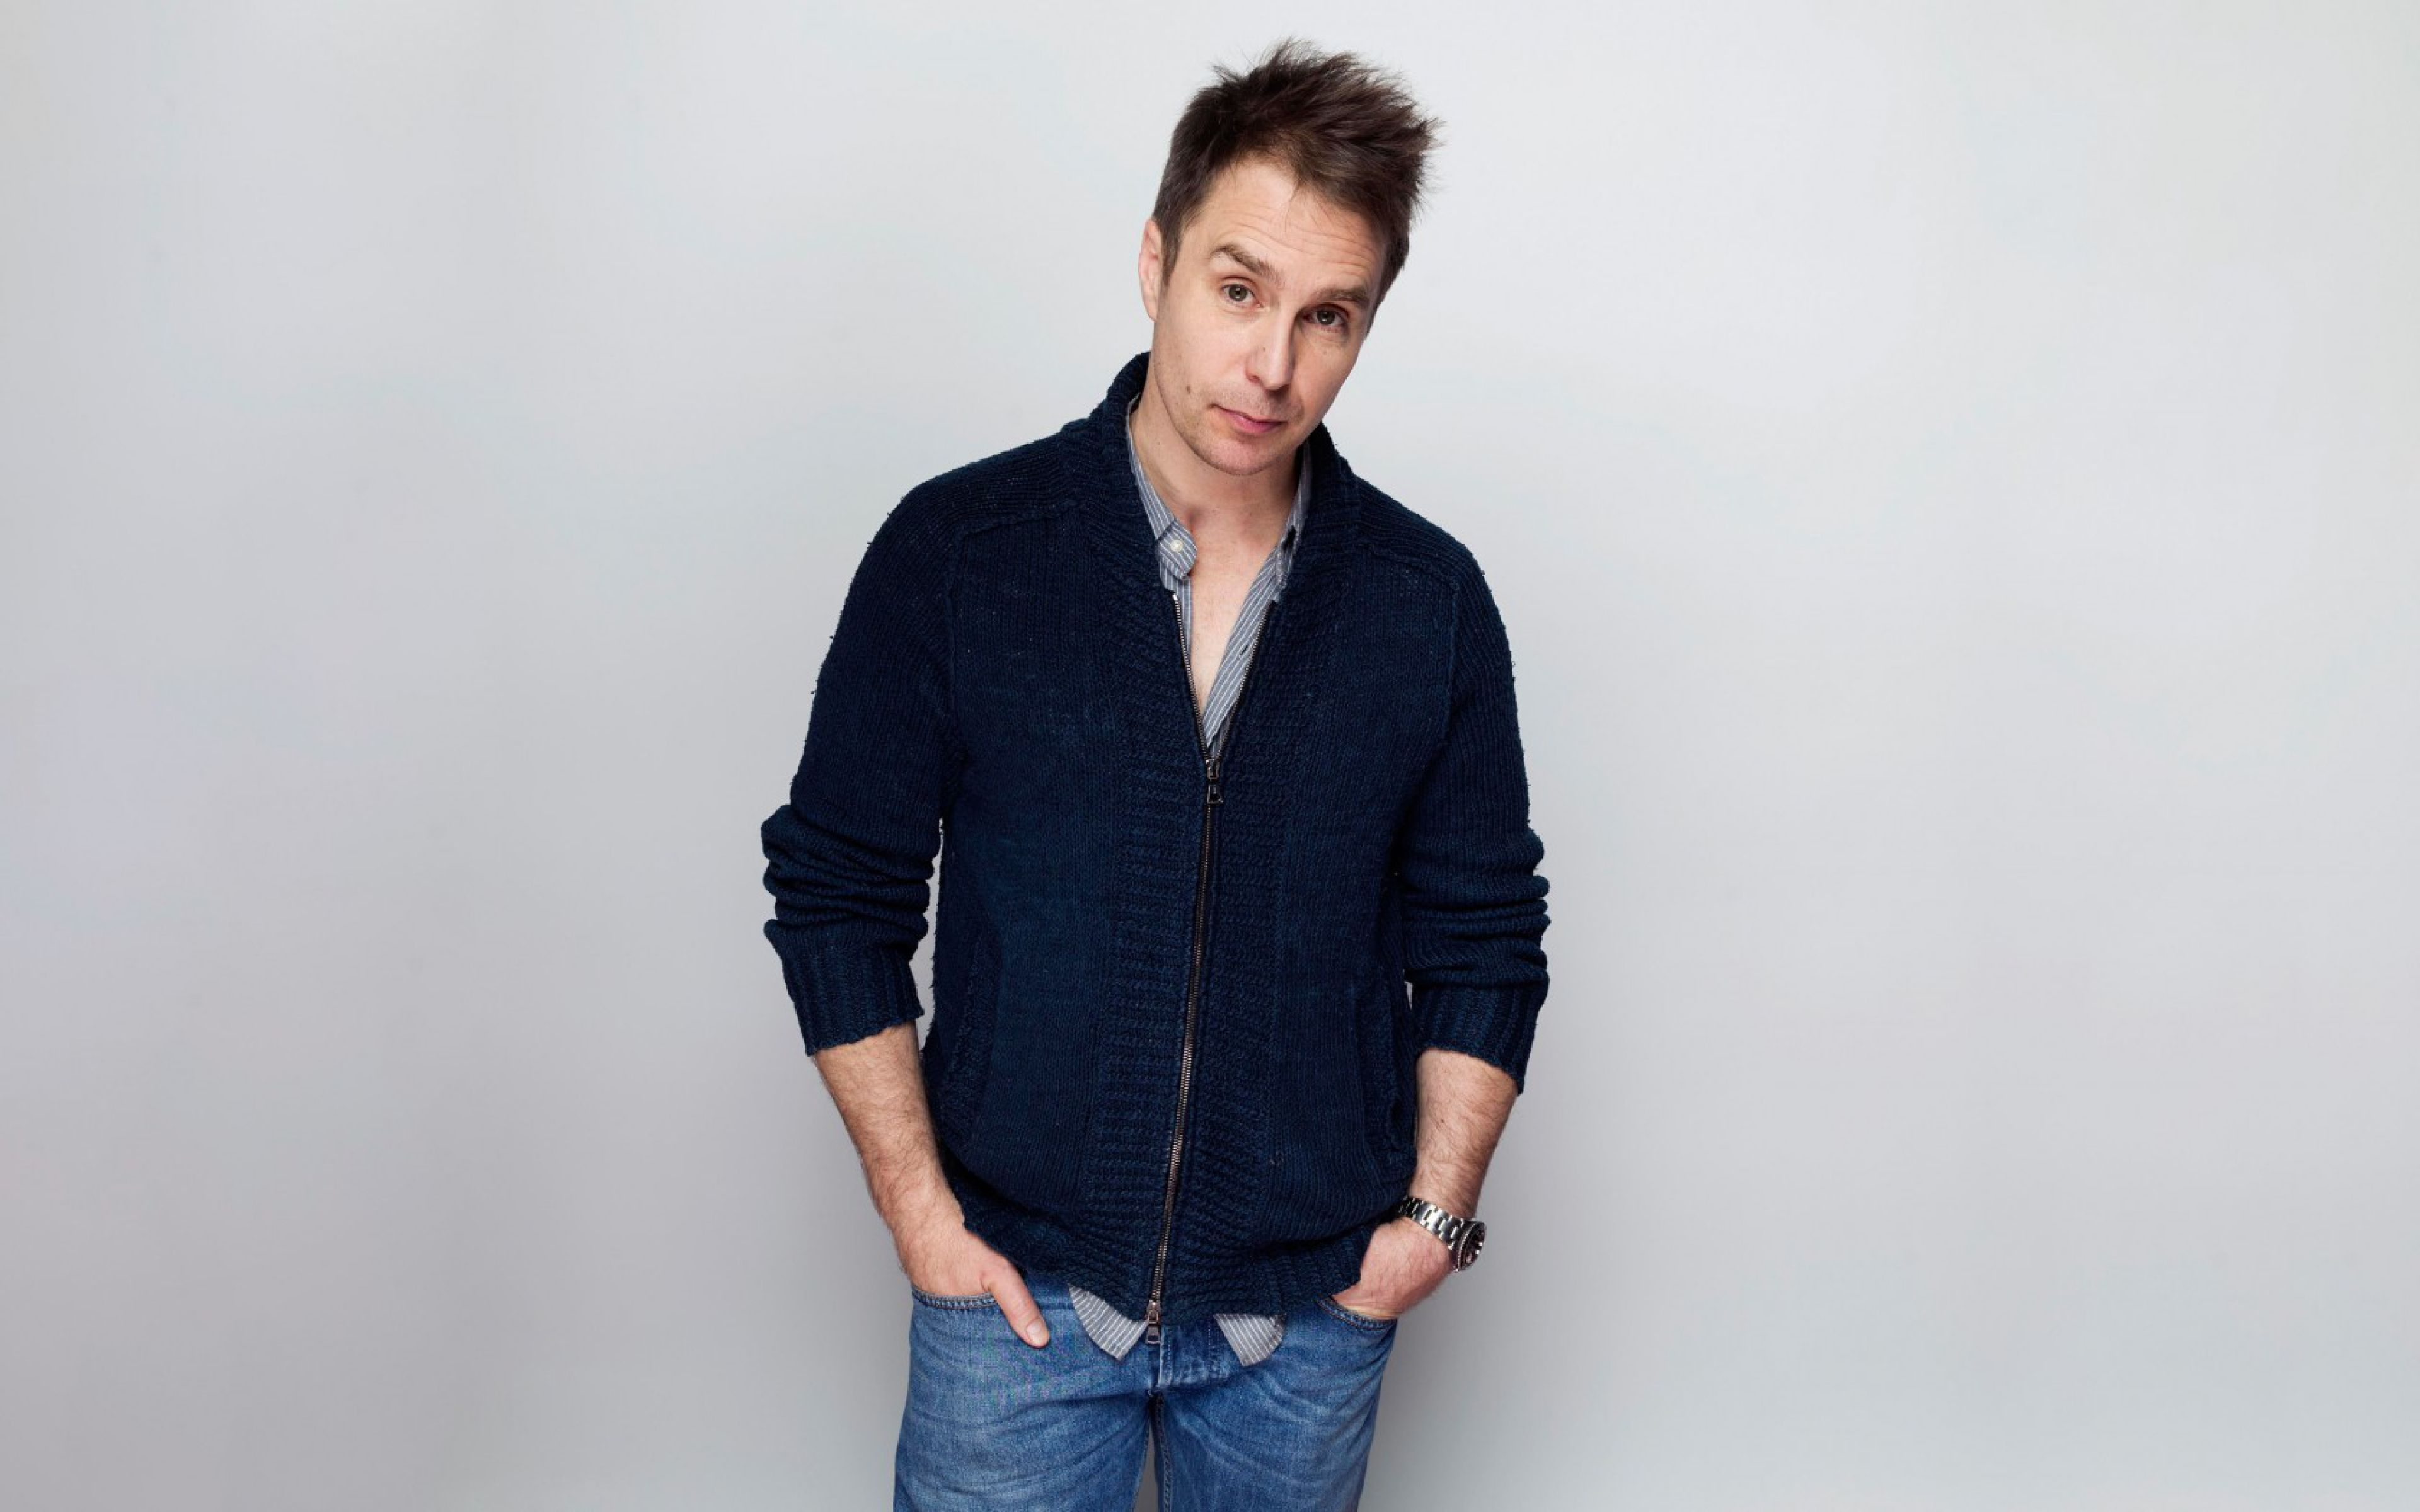 Sam Rockwell Widescreen Wallpaper 57239 3840x2400 px ...